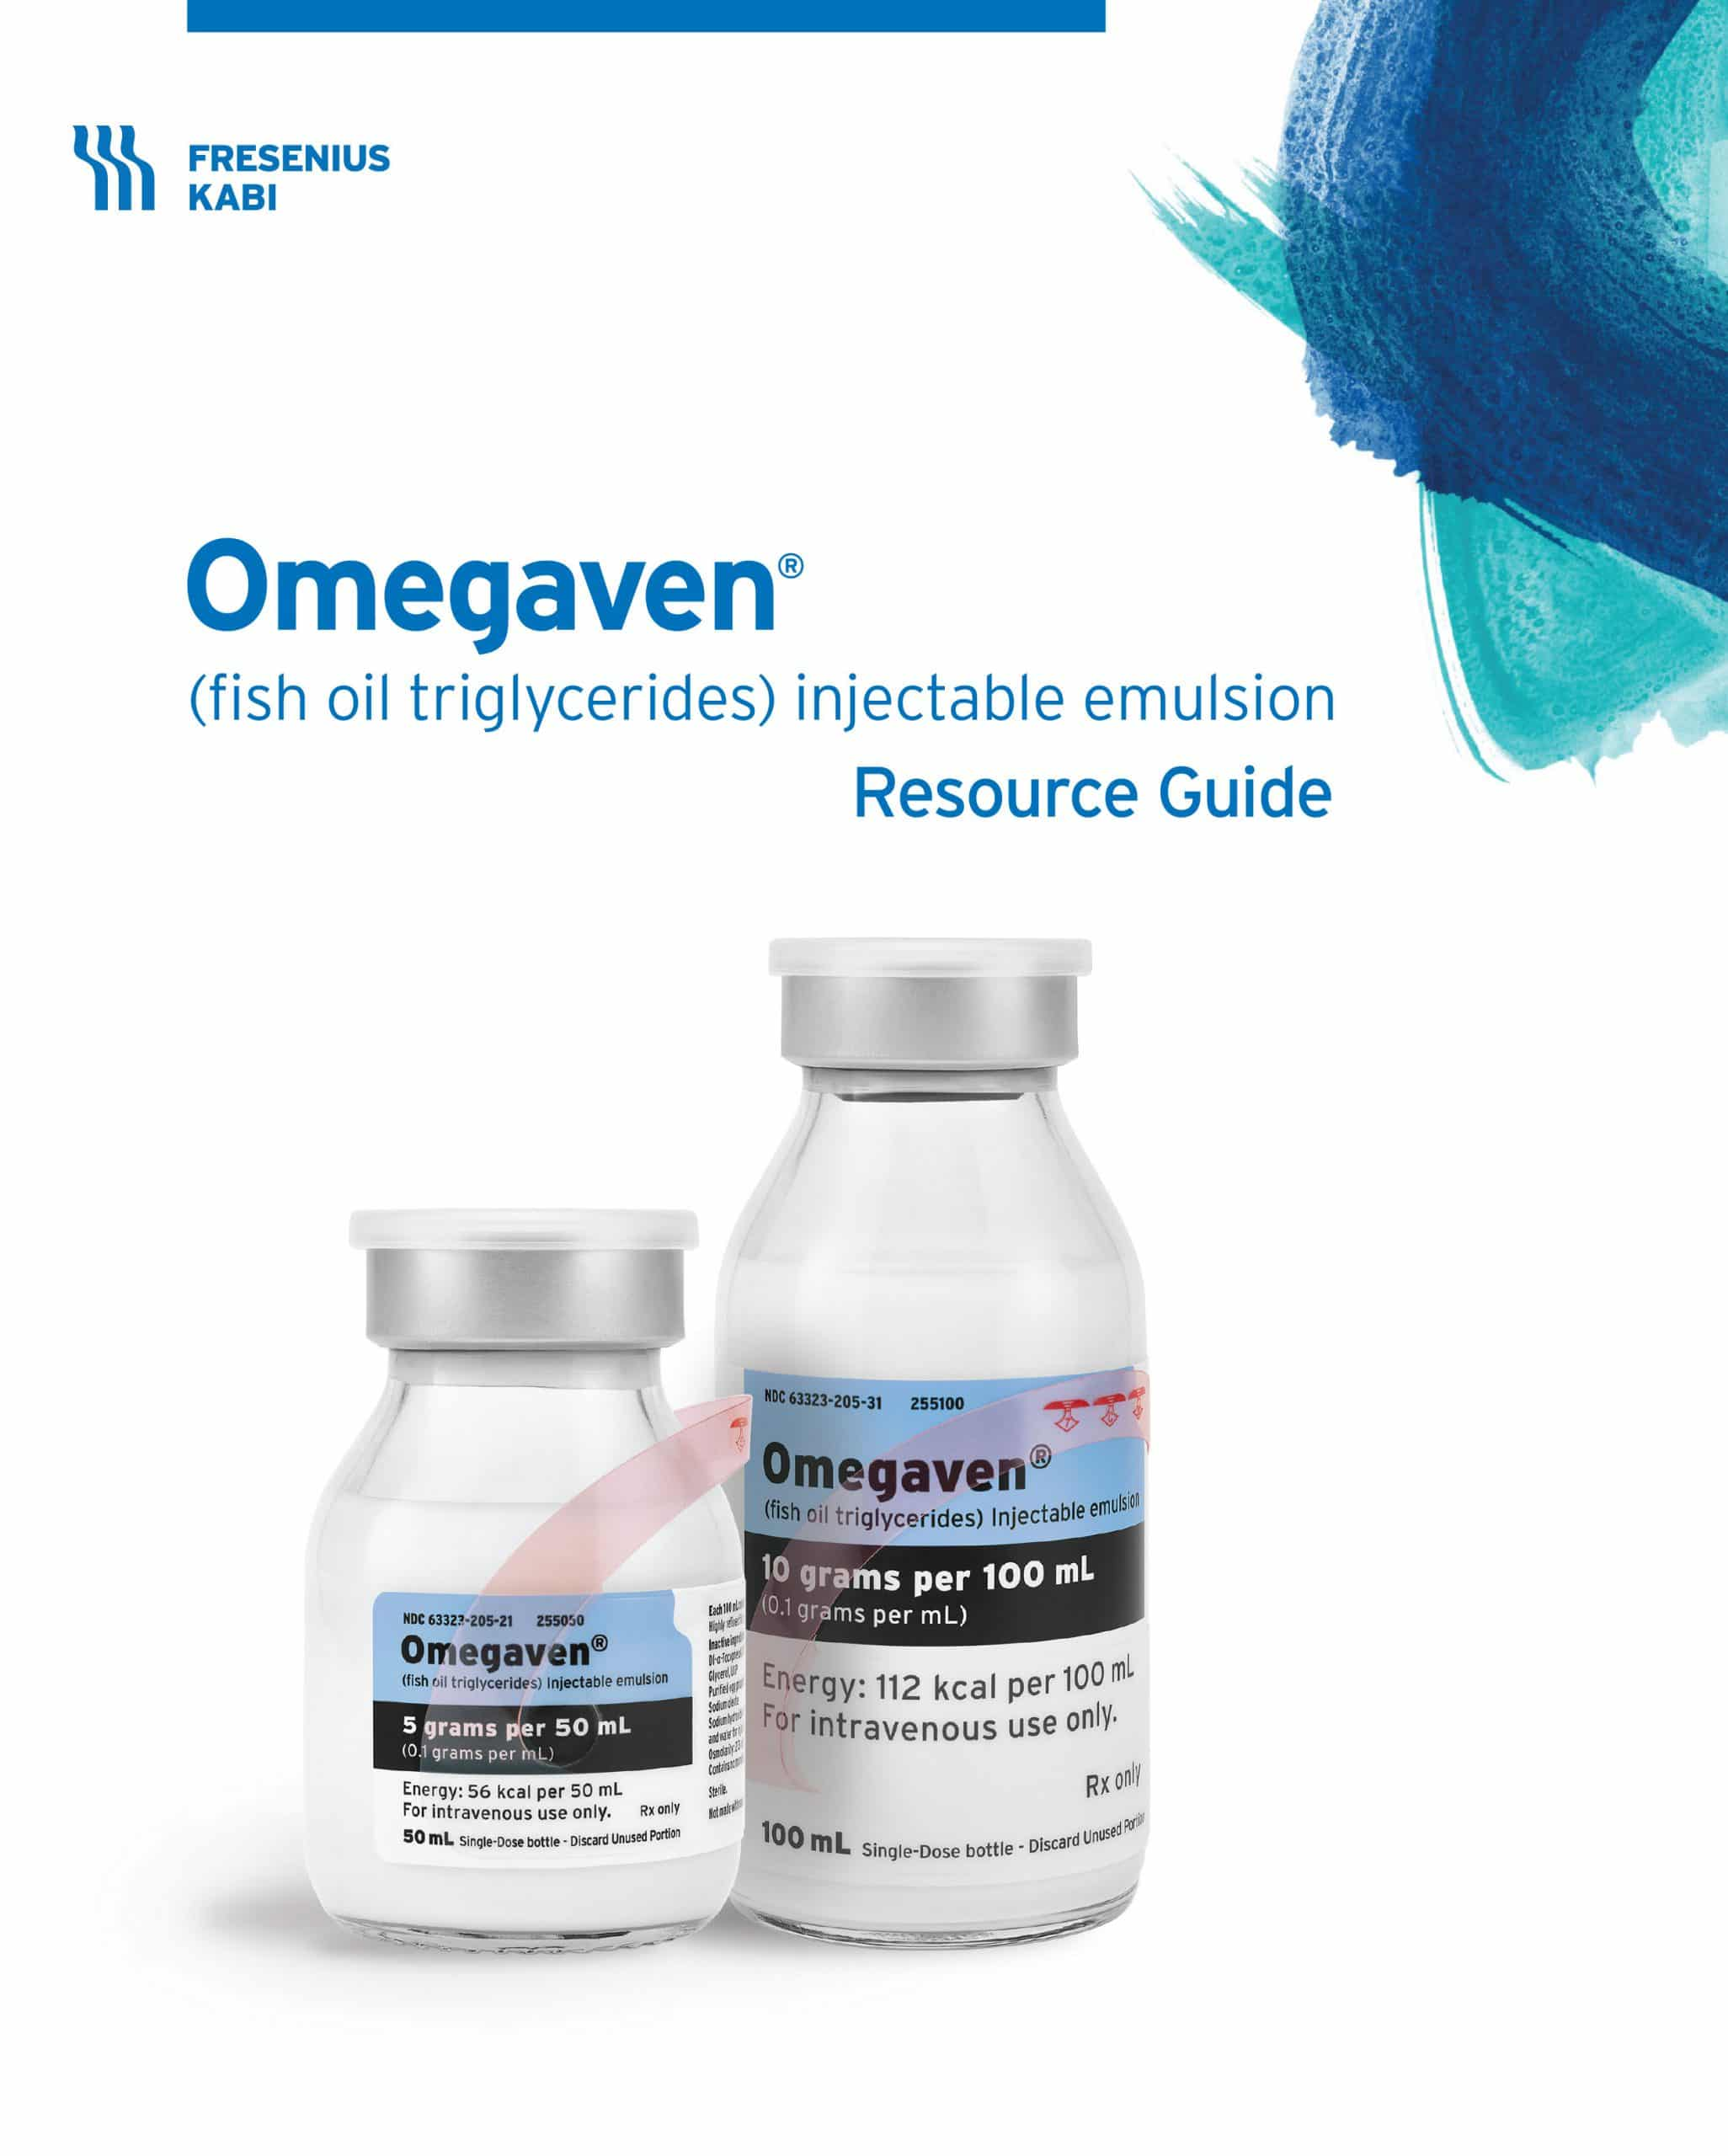 Omegaven Resource Guide